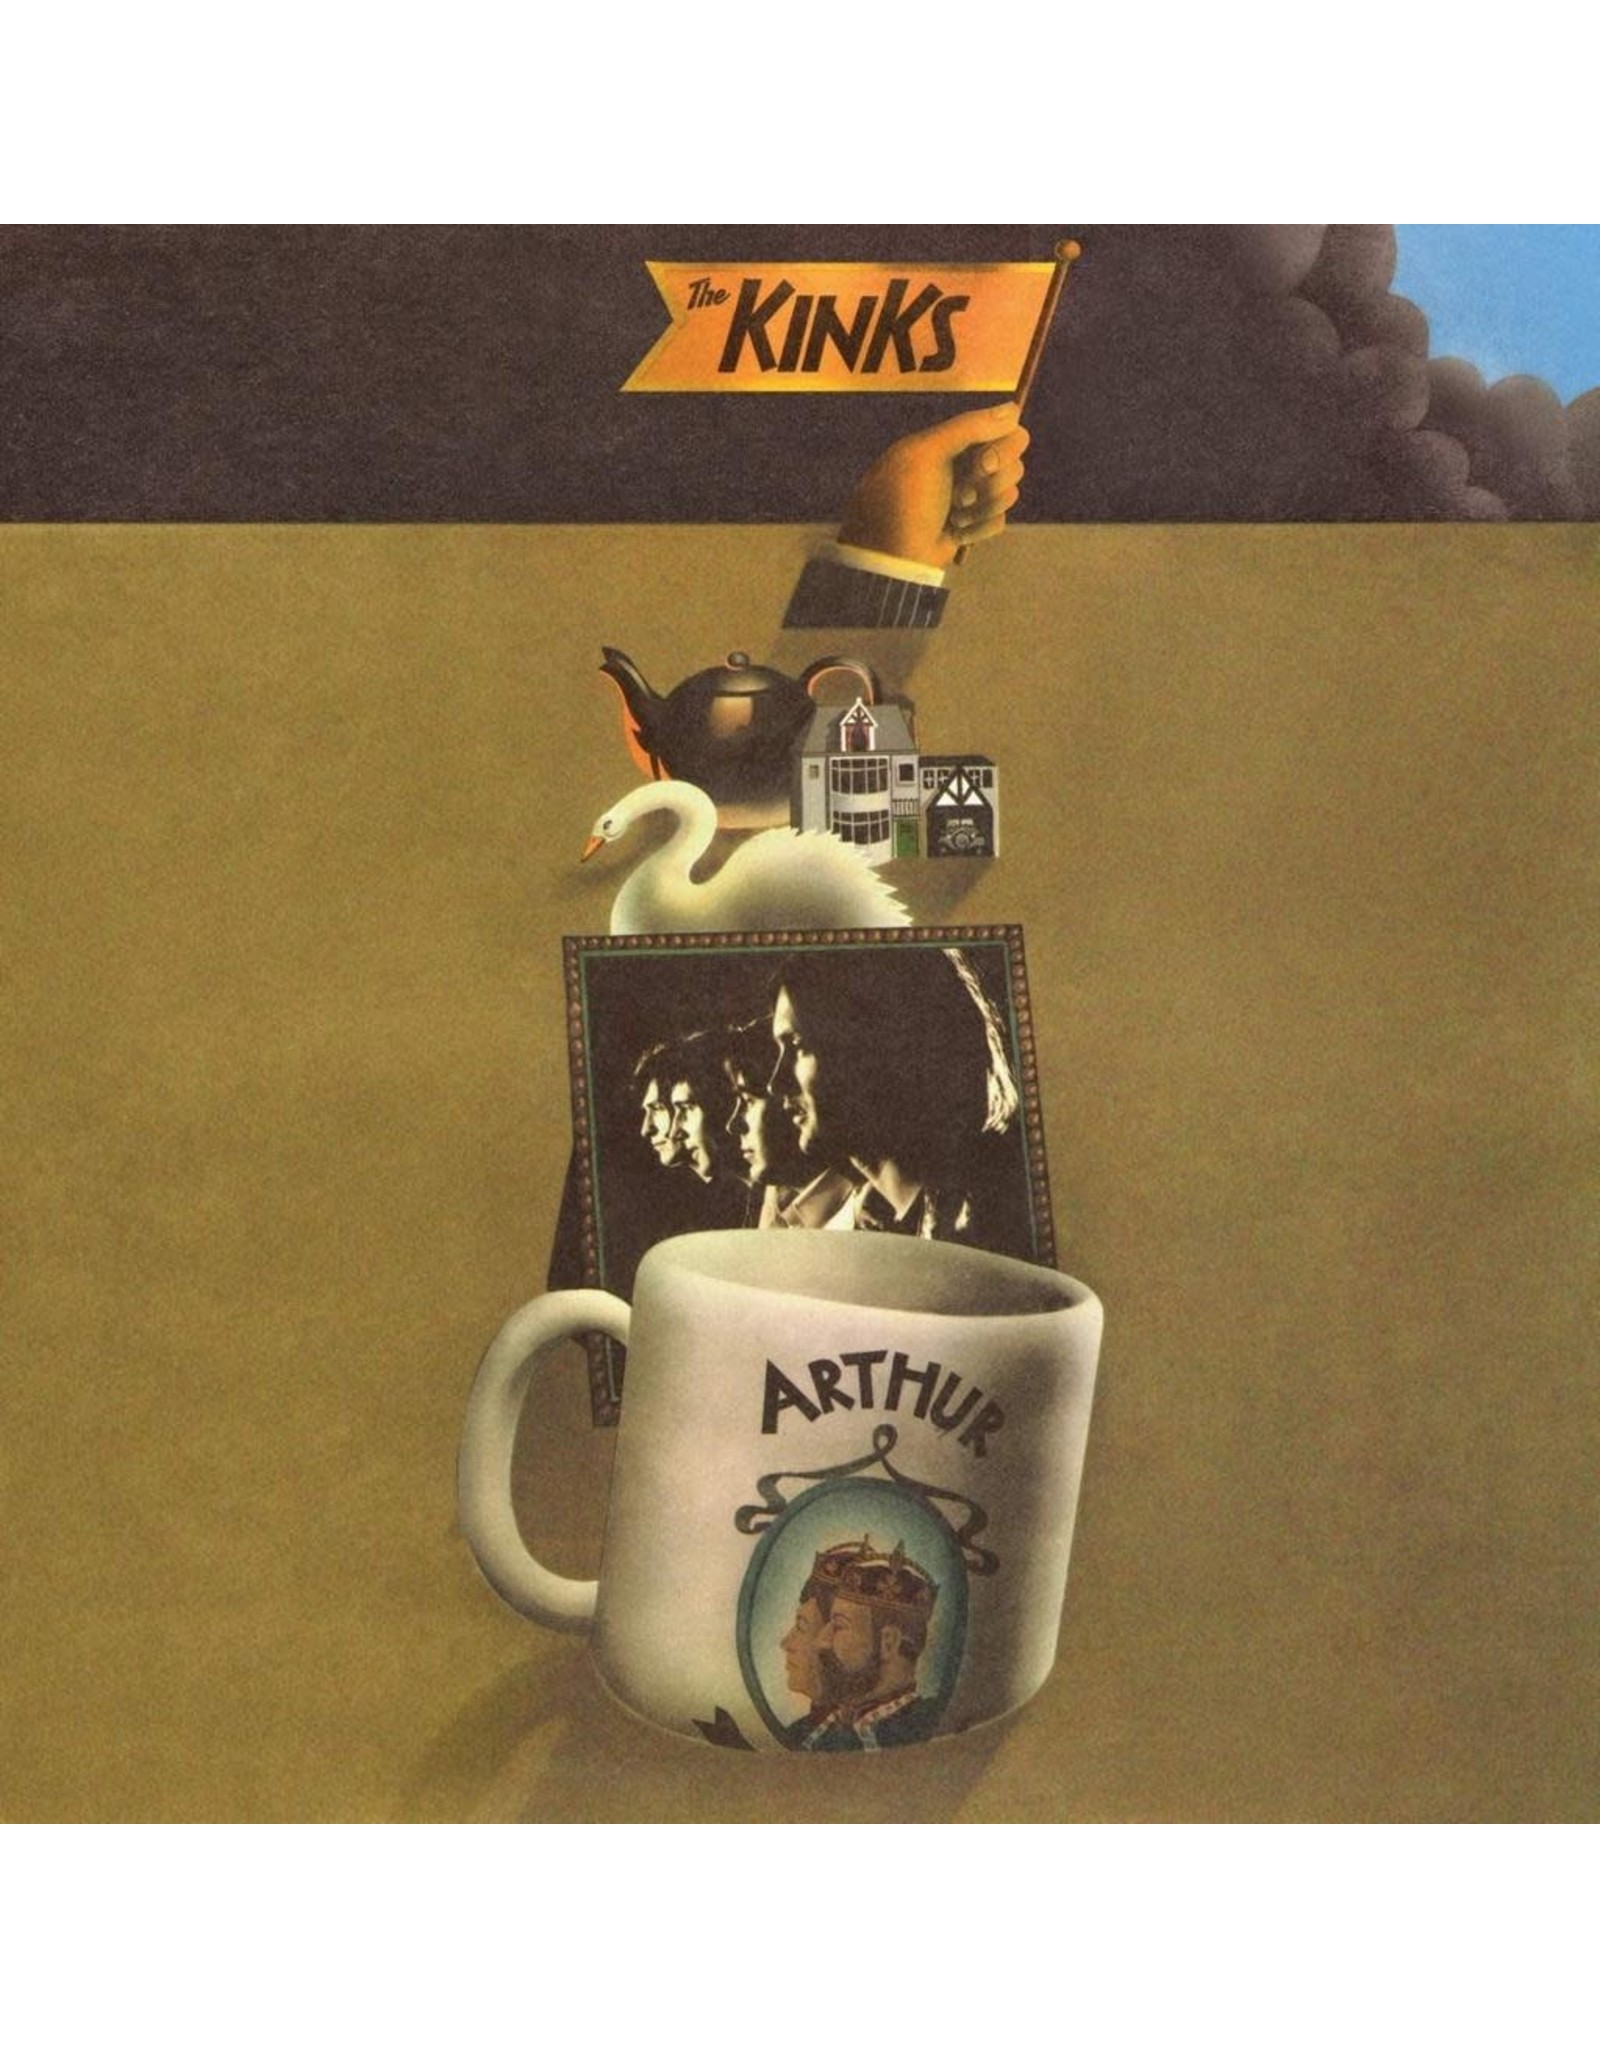 Kinks - Arthur or the Decline and Fall of the British Empire 2LP